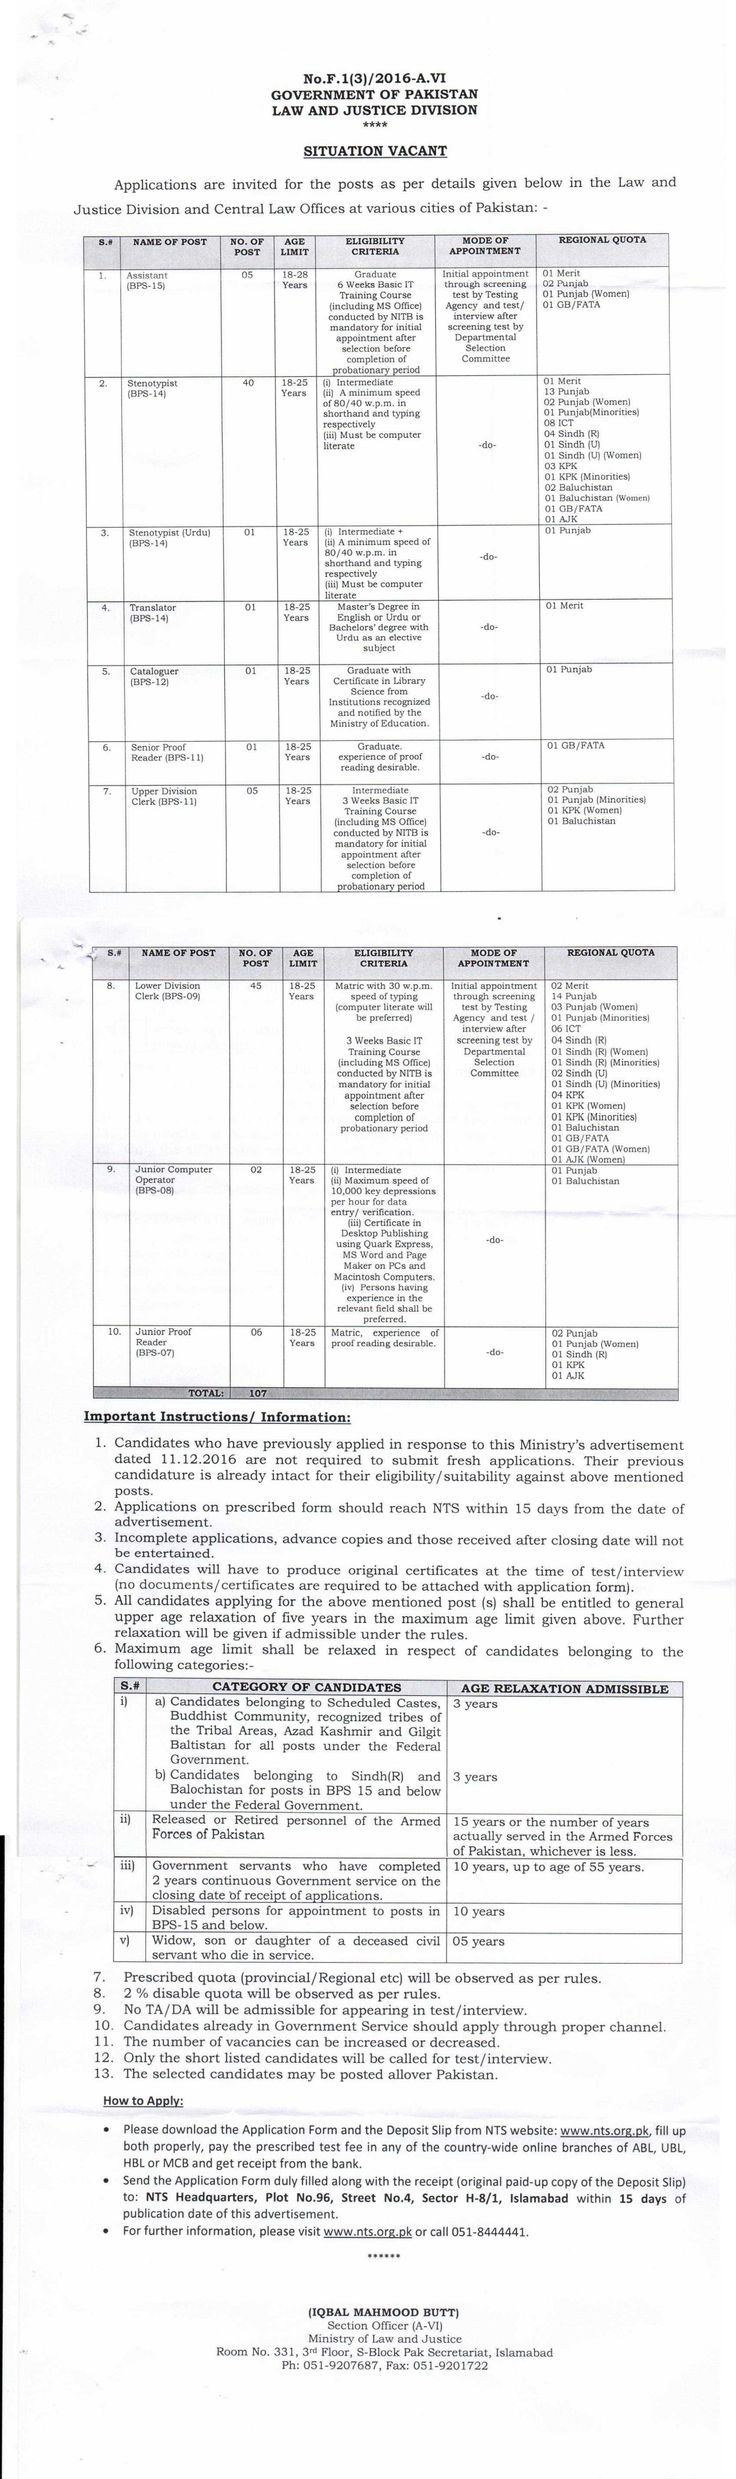 Jobs In Law And Justice Division Govt Of Pakistan  Jobs In Law And Justice Division Govt Of Pakistan.Please see the advertisement below for details.    Deadline: 26 March 2016  Advertisement from The News Newspaper (published on 11 March 2016).